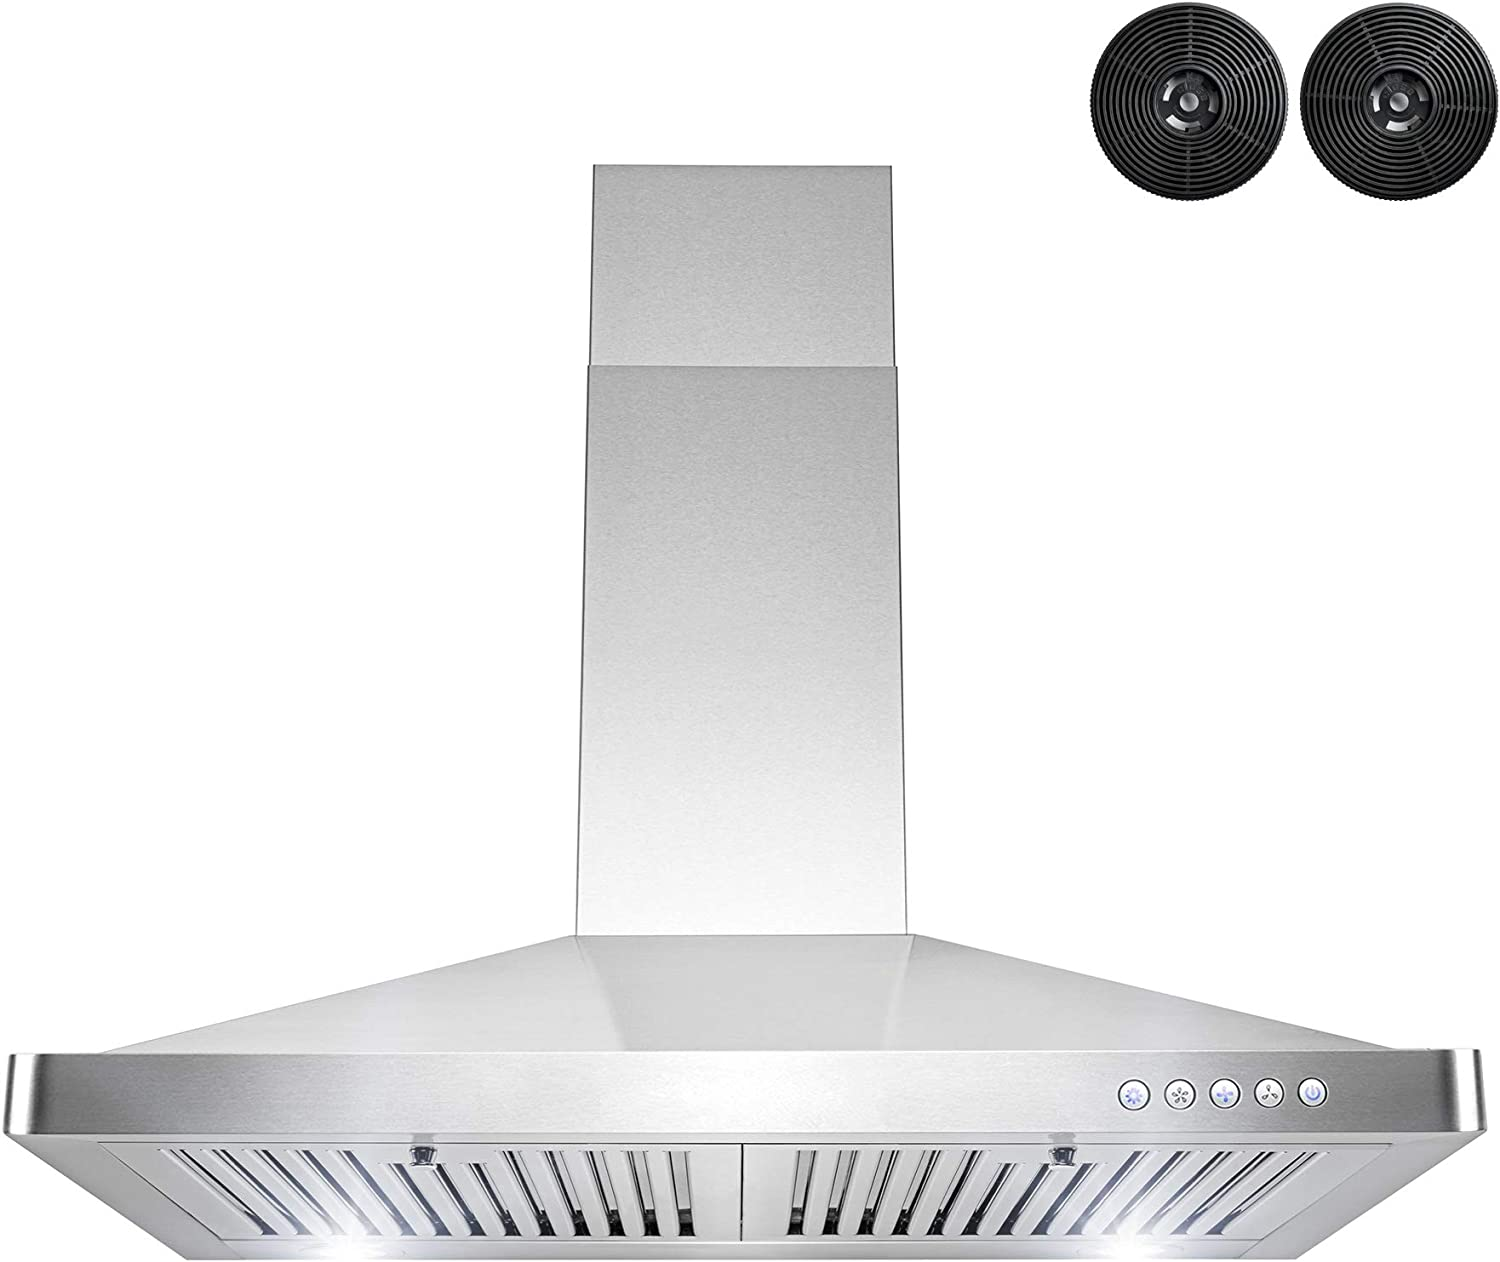 AKDY 30 in. Convertible Stainless Steel Wall Mount Range Hood with LED and Carbon Filters